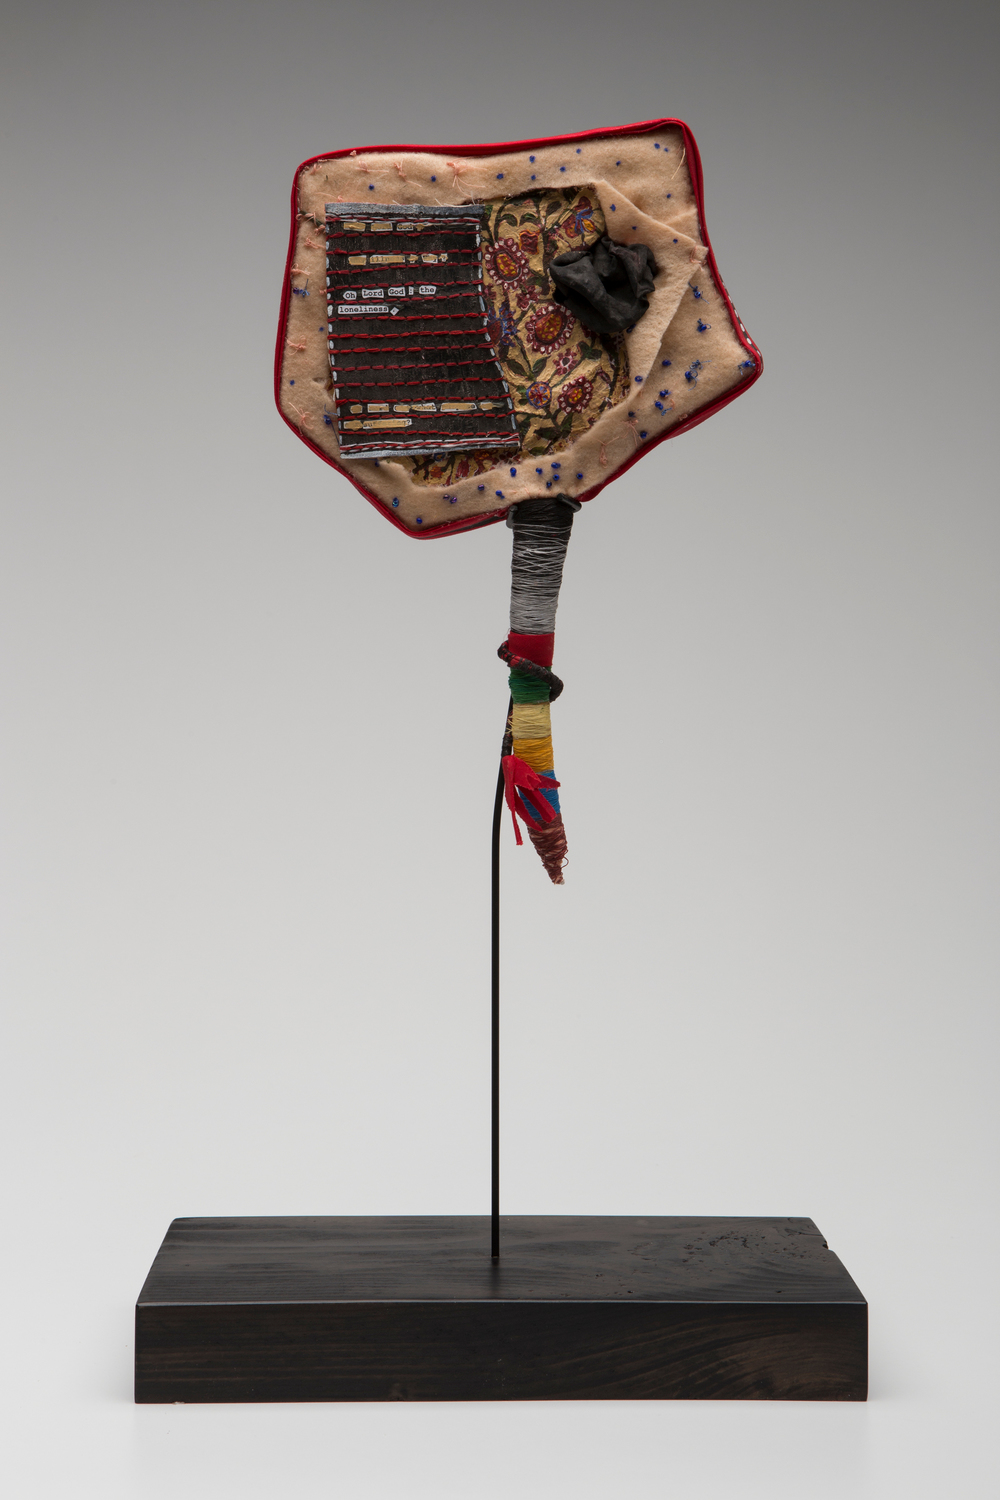 Prayer Paddle: For Loneliness , mixed media, 11 by 7 inches, 2007-2014.